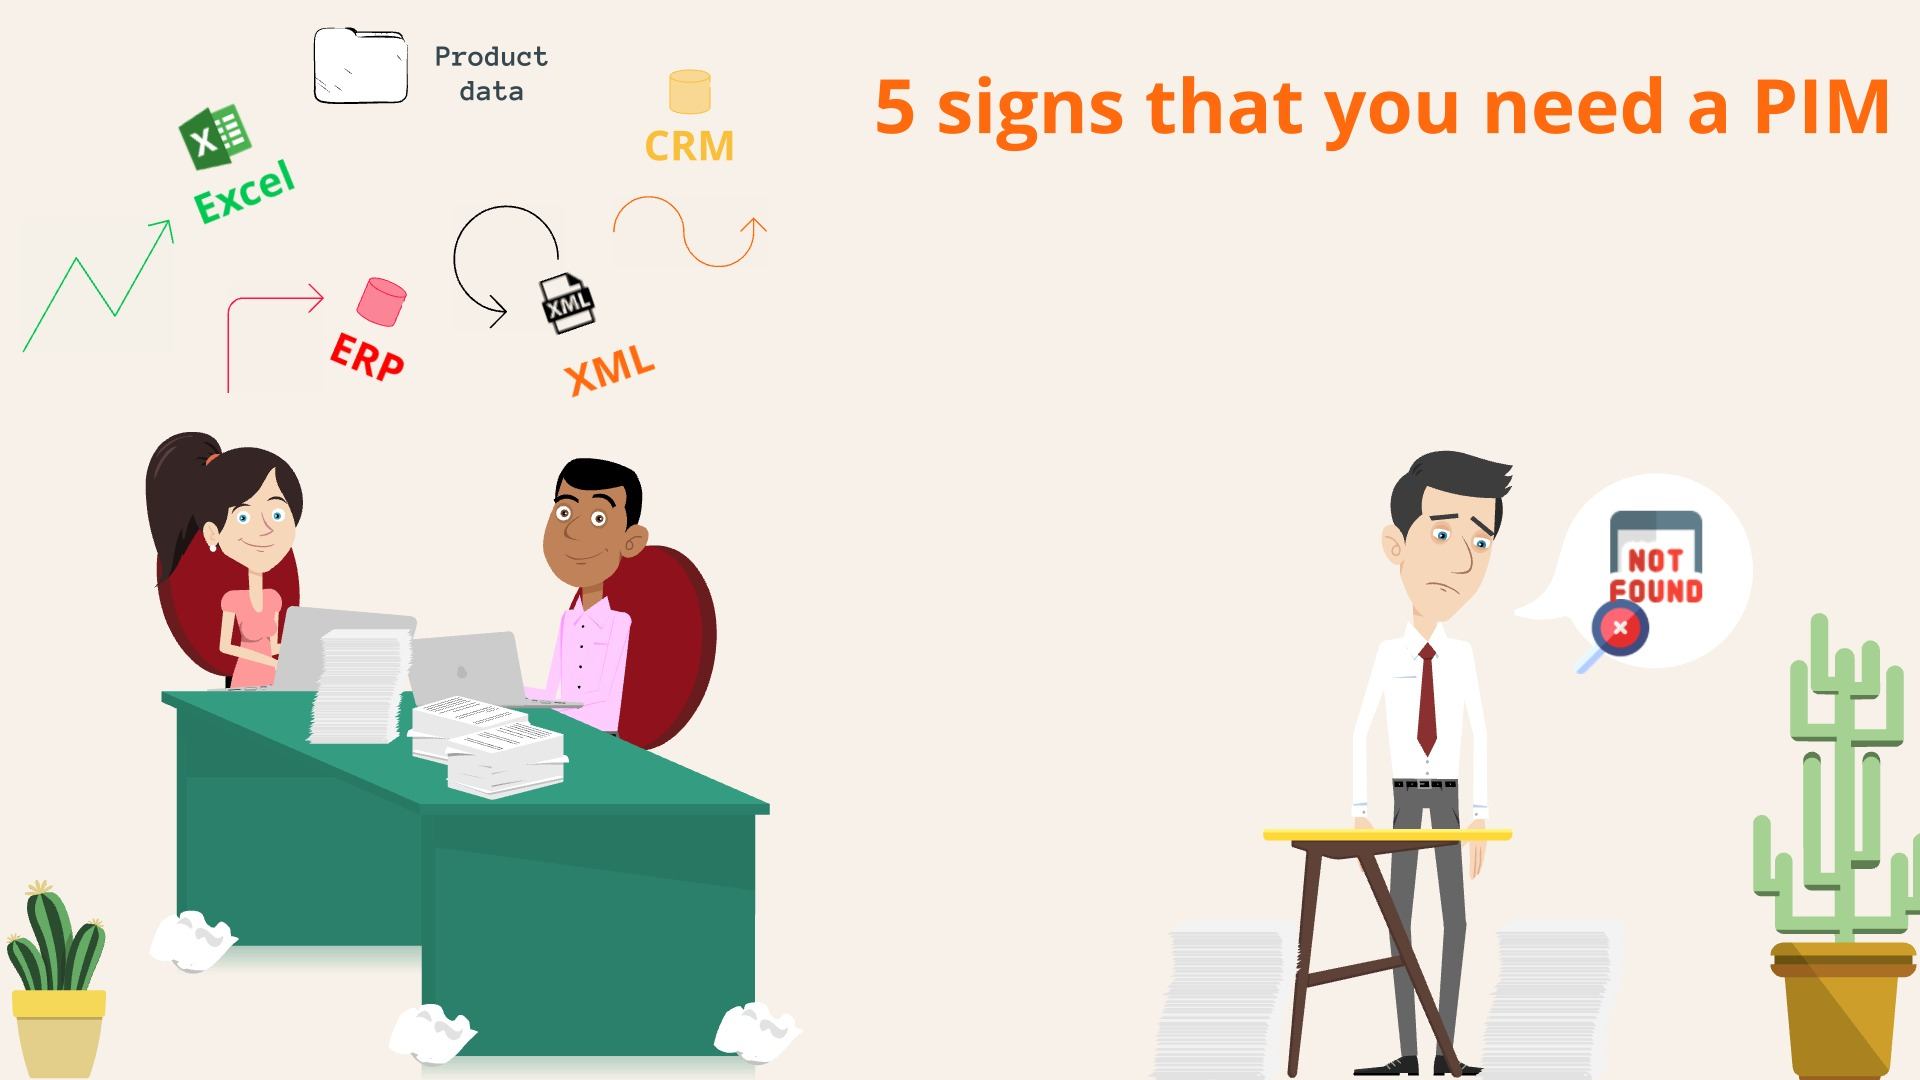 5 signs that you need a PIM